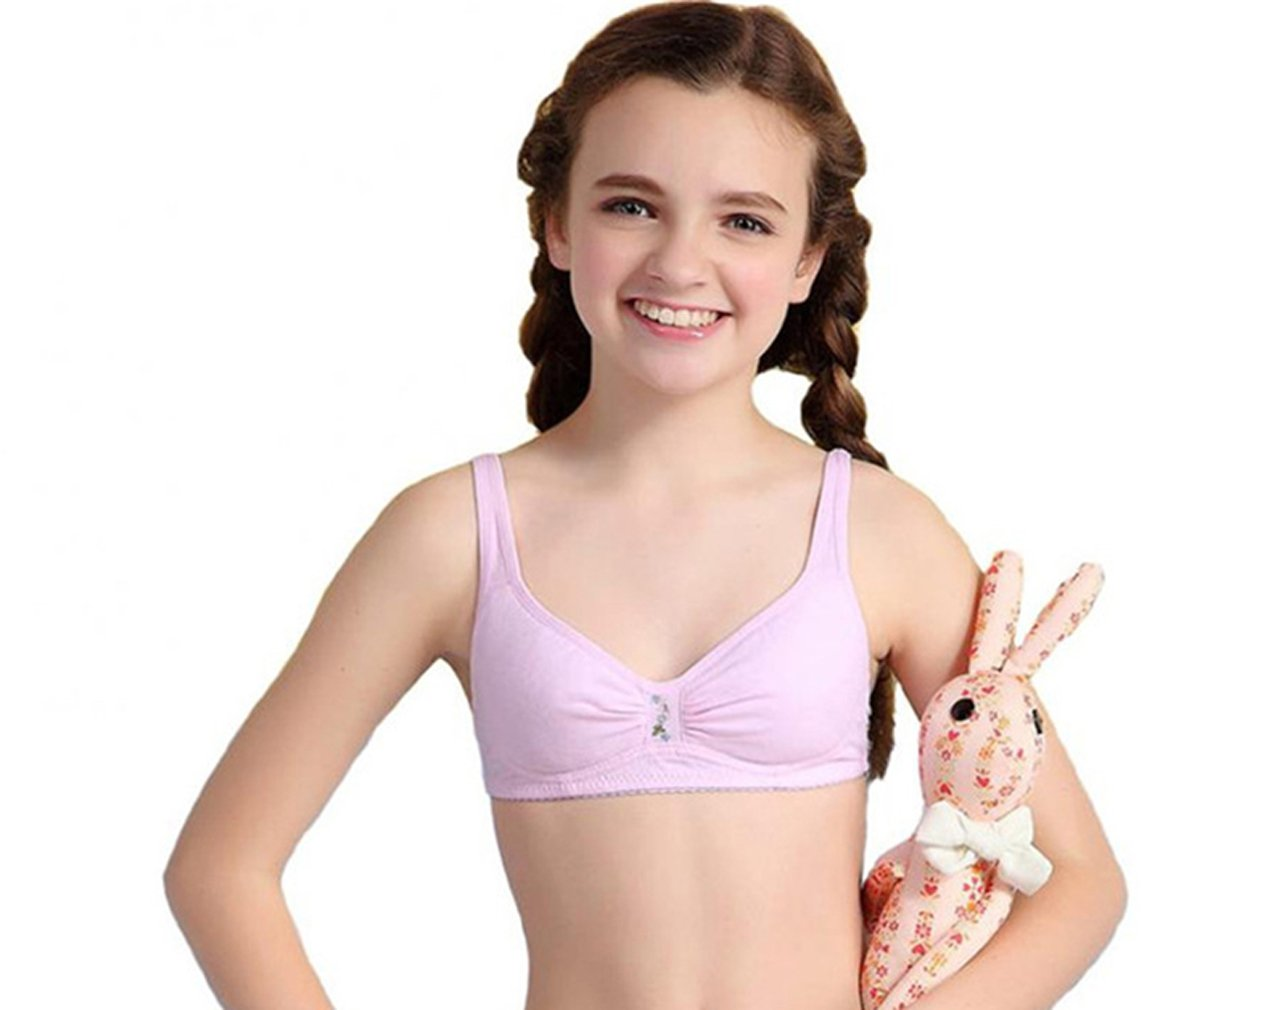 MANJIAMEI Young Girl First Time Thin Cup Cotton Training Bra with Matching Pants